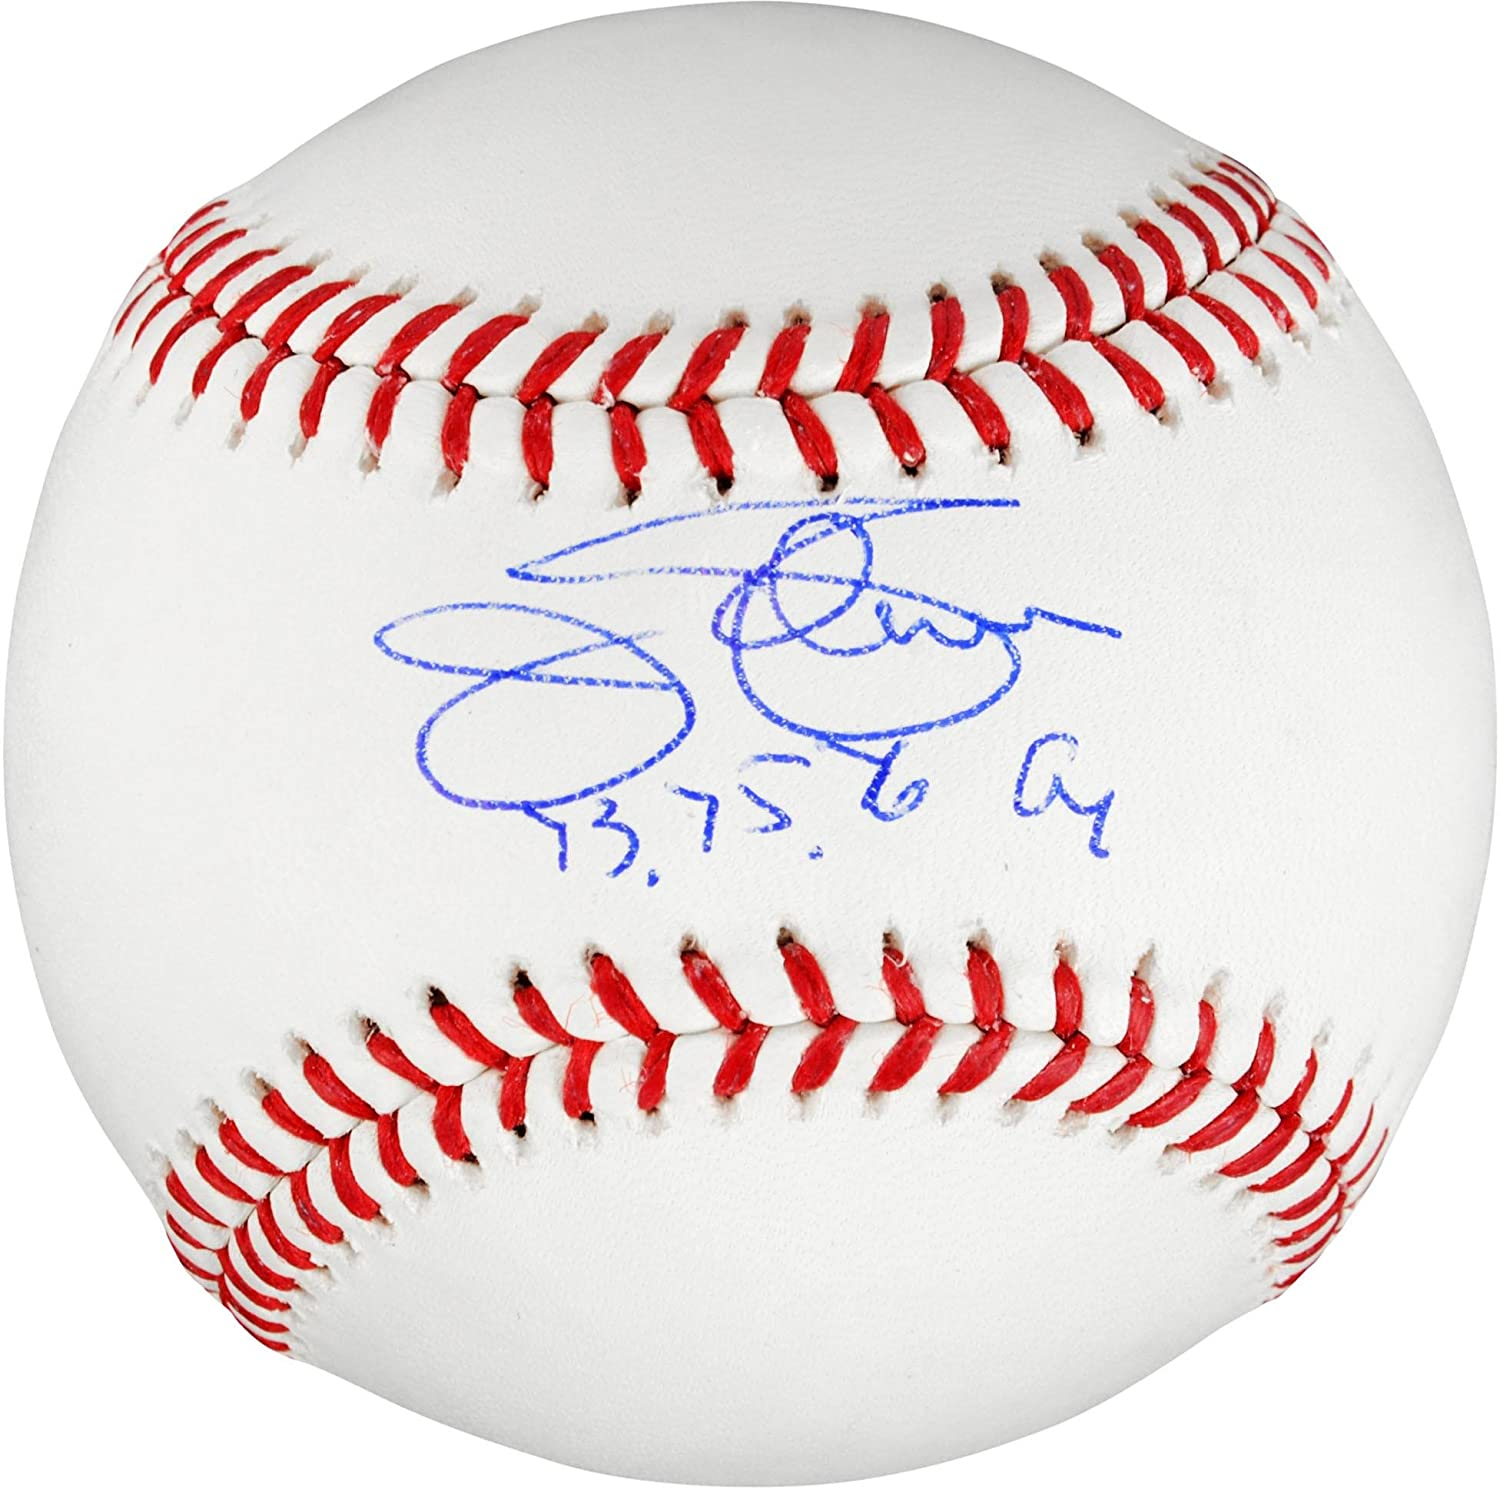 Jim Palmer Baltimore Orioles Autographed Baseball with CY 73, 75, 76 Inscription - Fanatics Authentic Certified